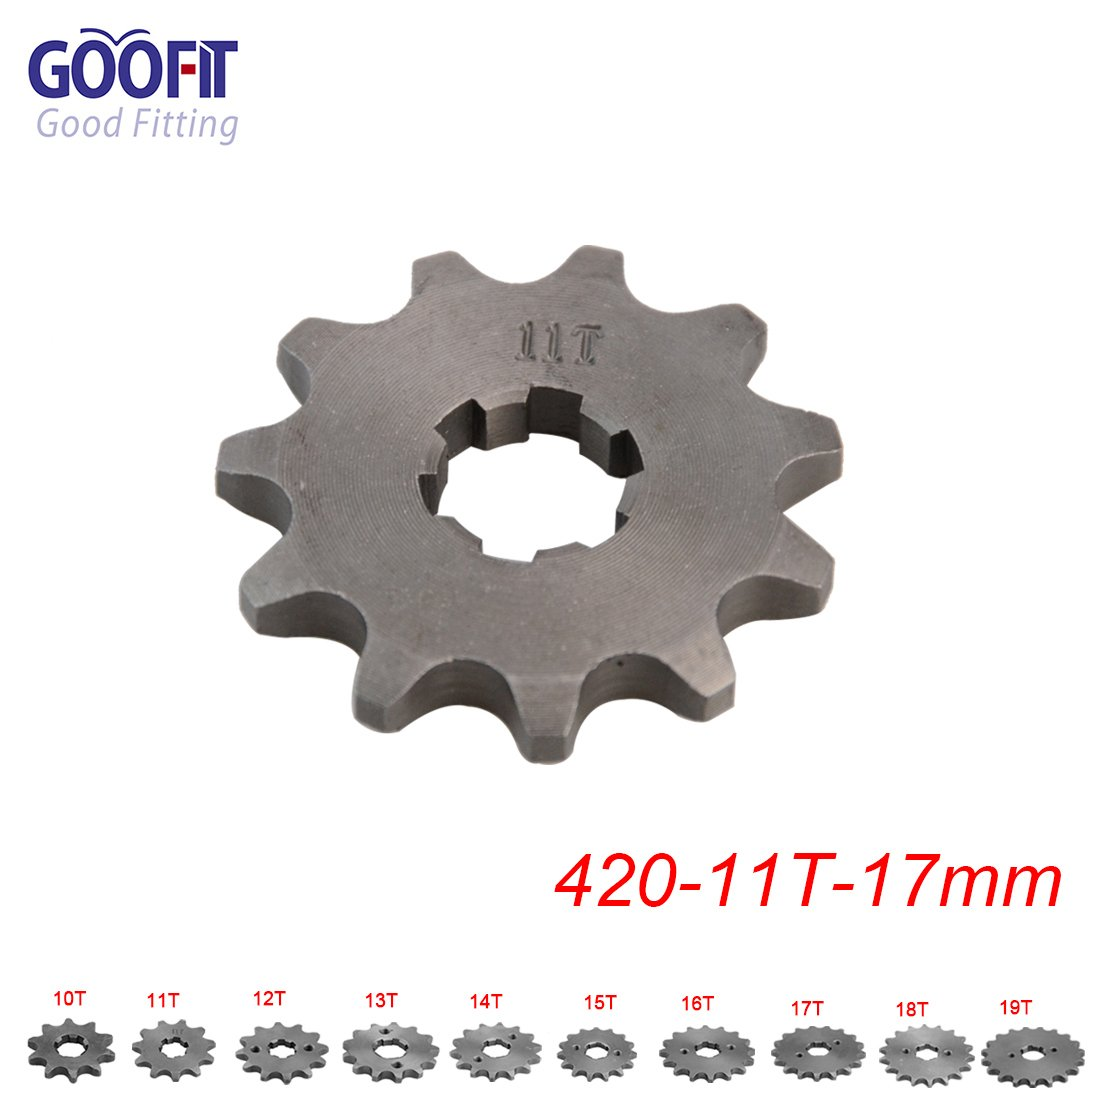 Goofit 428 13 T 17mm dents moto Pignon moteur Pignons coniques de cha/îne Engine For 50cc 70cc 90cc 110cc Motorcycle Dirt Bike ATV Quad